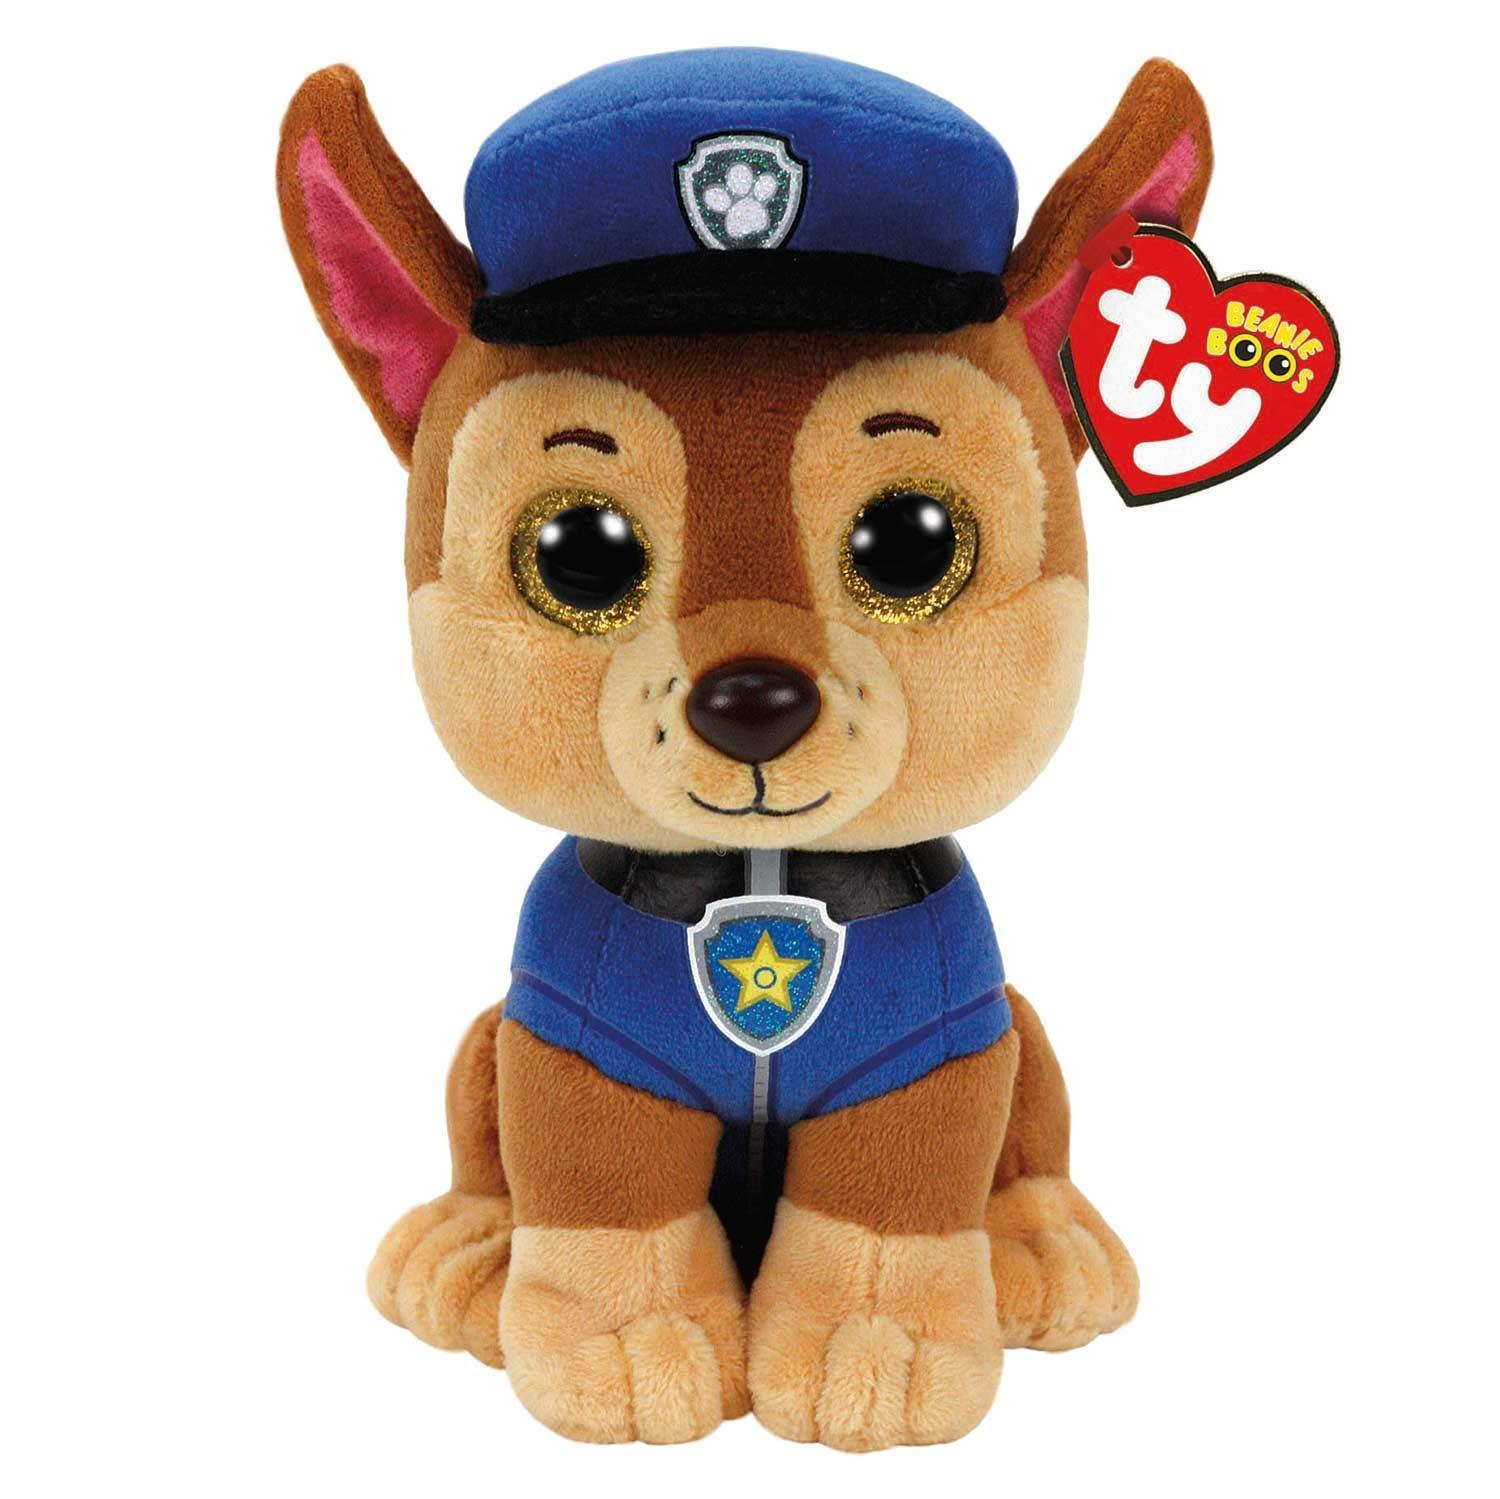 Nickelodeon Paw Patrol Chase TY soft toy